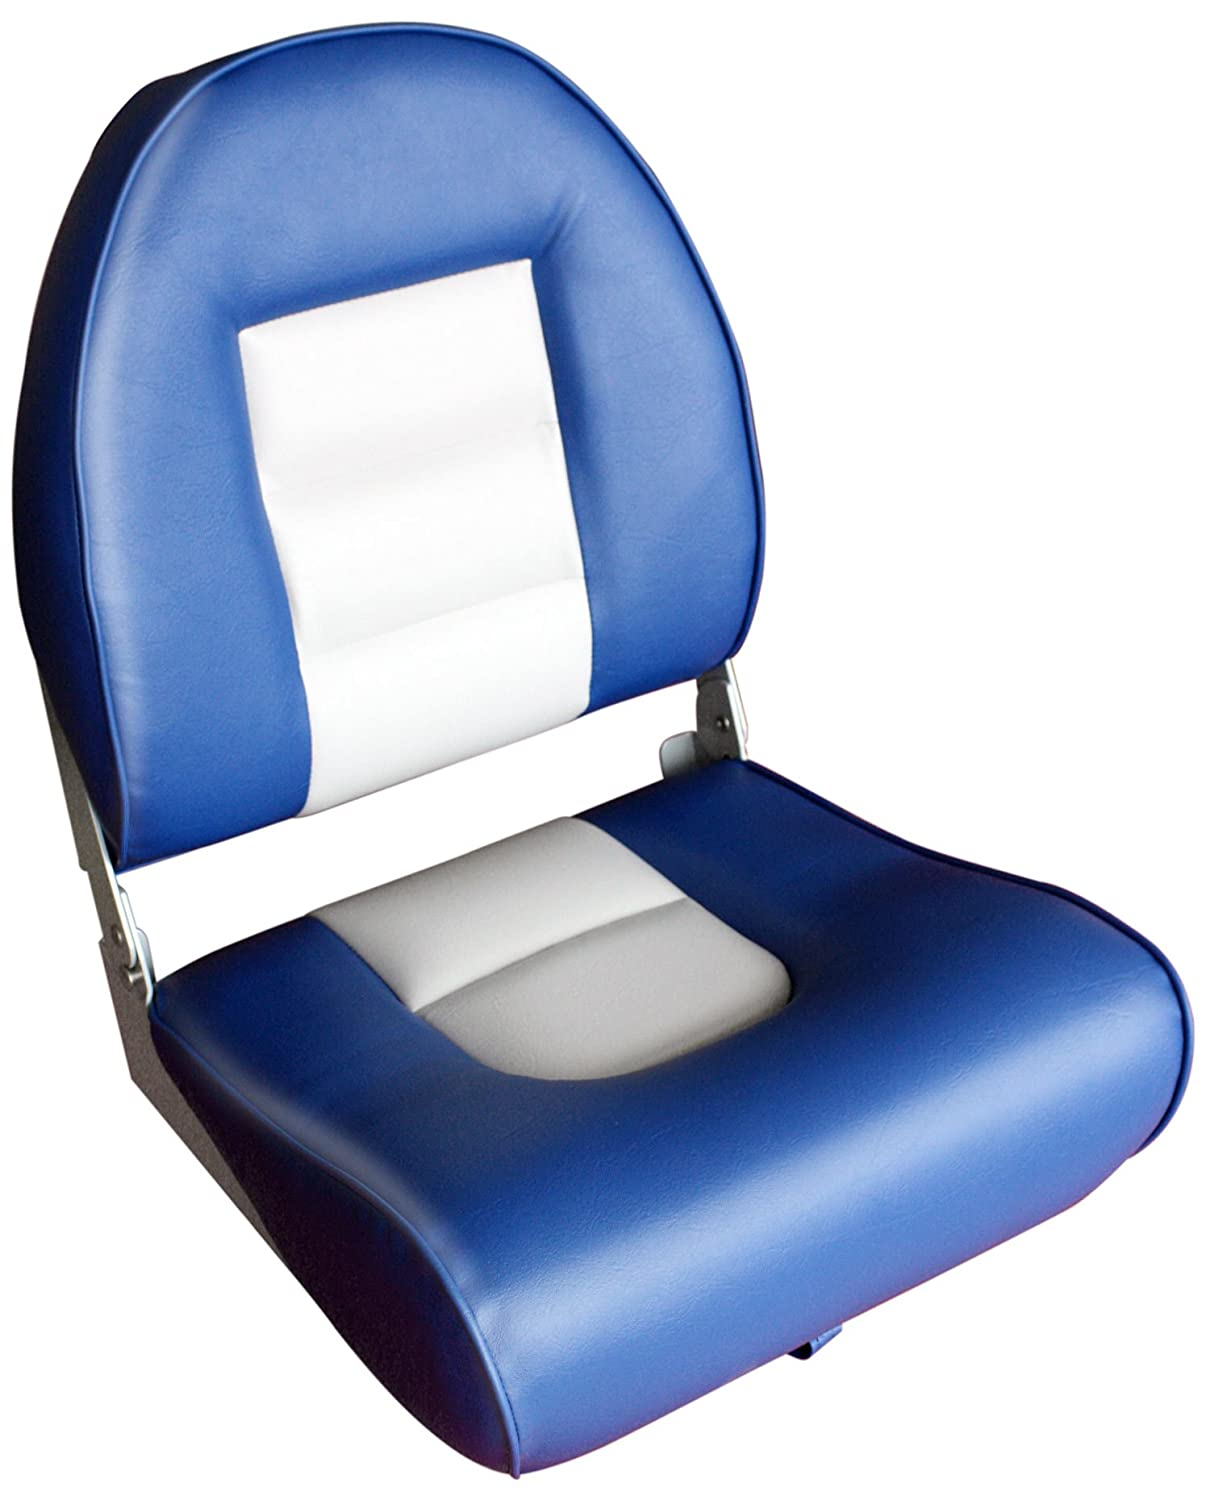 Leader Accessories folding boat seat